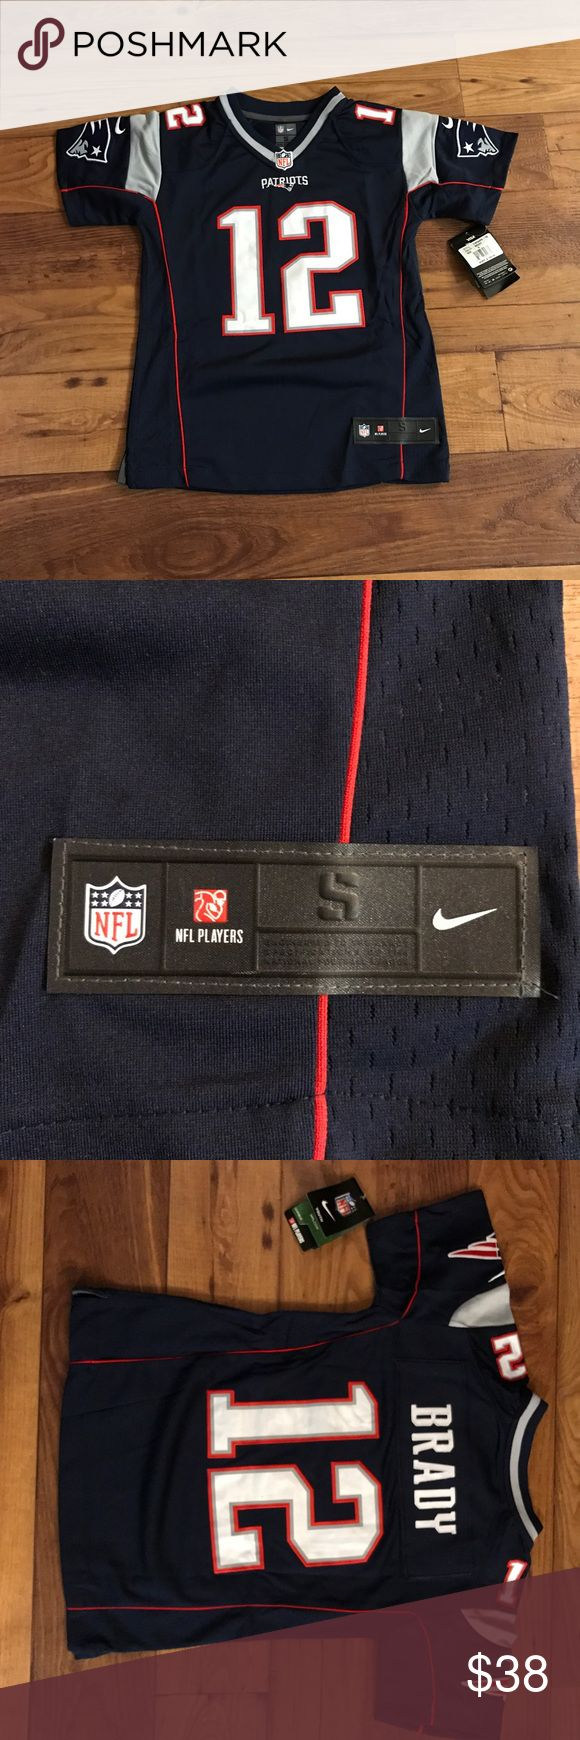 Kids Tom Brady Jersey Kids Tom Brady jersey. 100% authentic GUARANTEED!! Small flaw on back letter pictured. Dirt/dust may come out with wash. New with tags! Nike Other